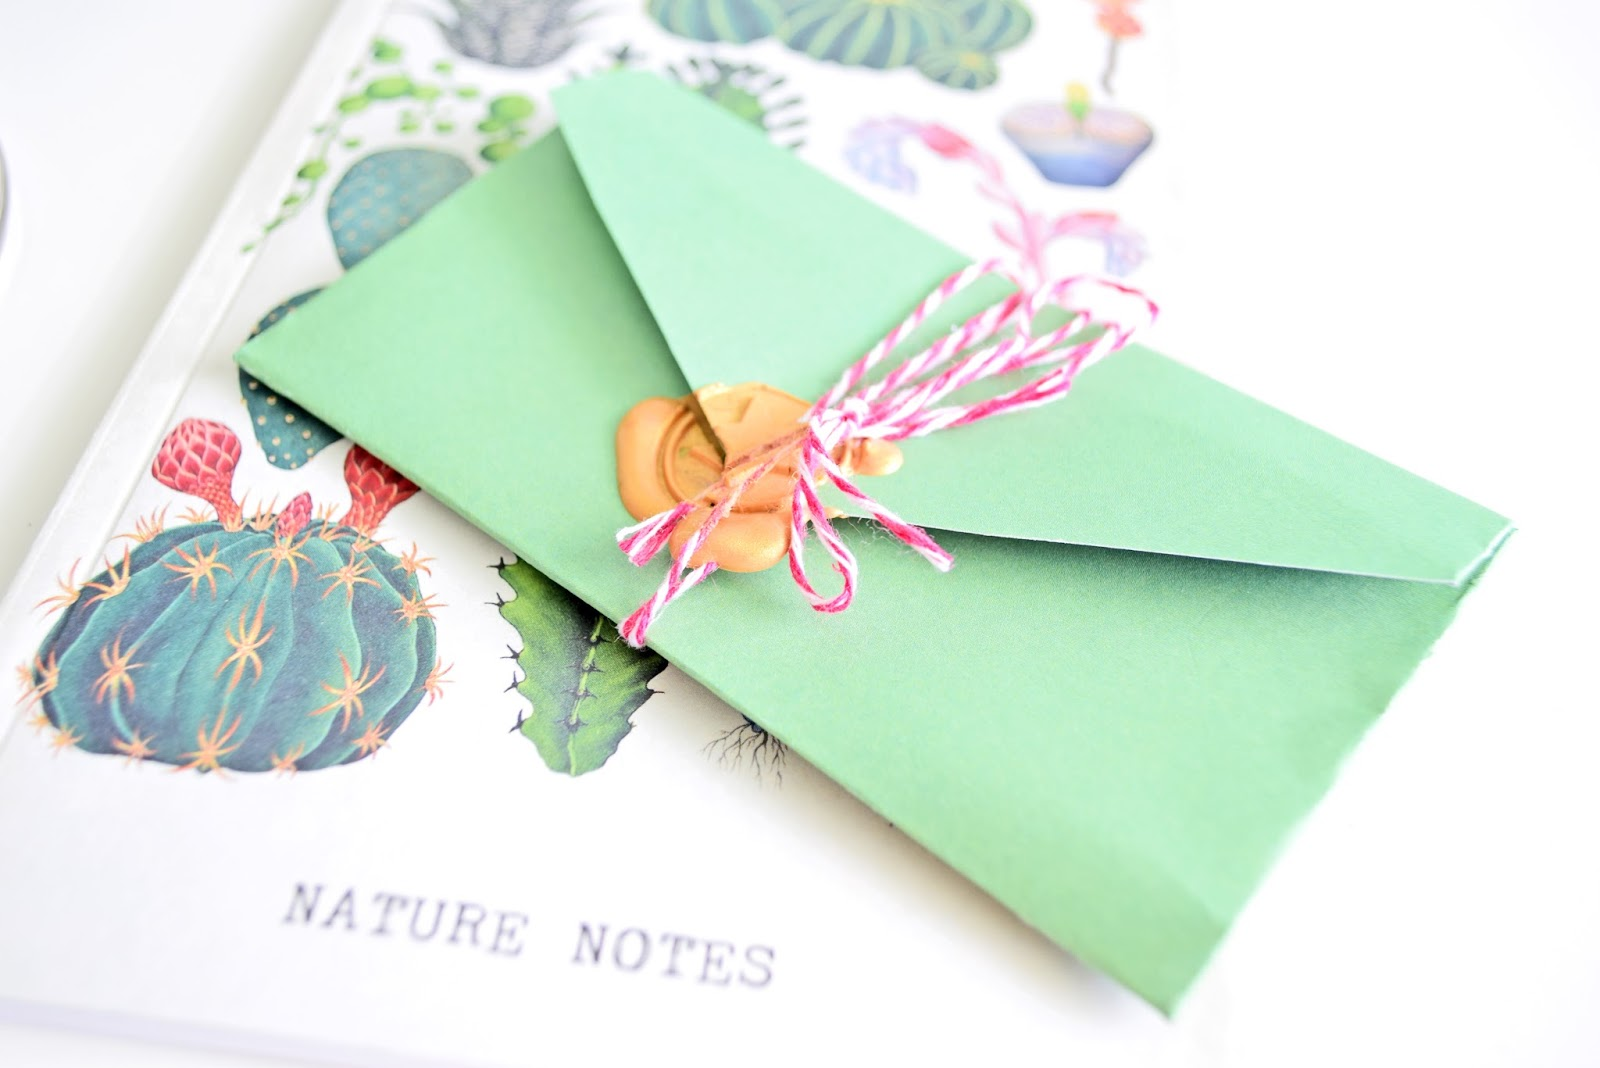 How to make a envelope?